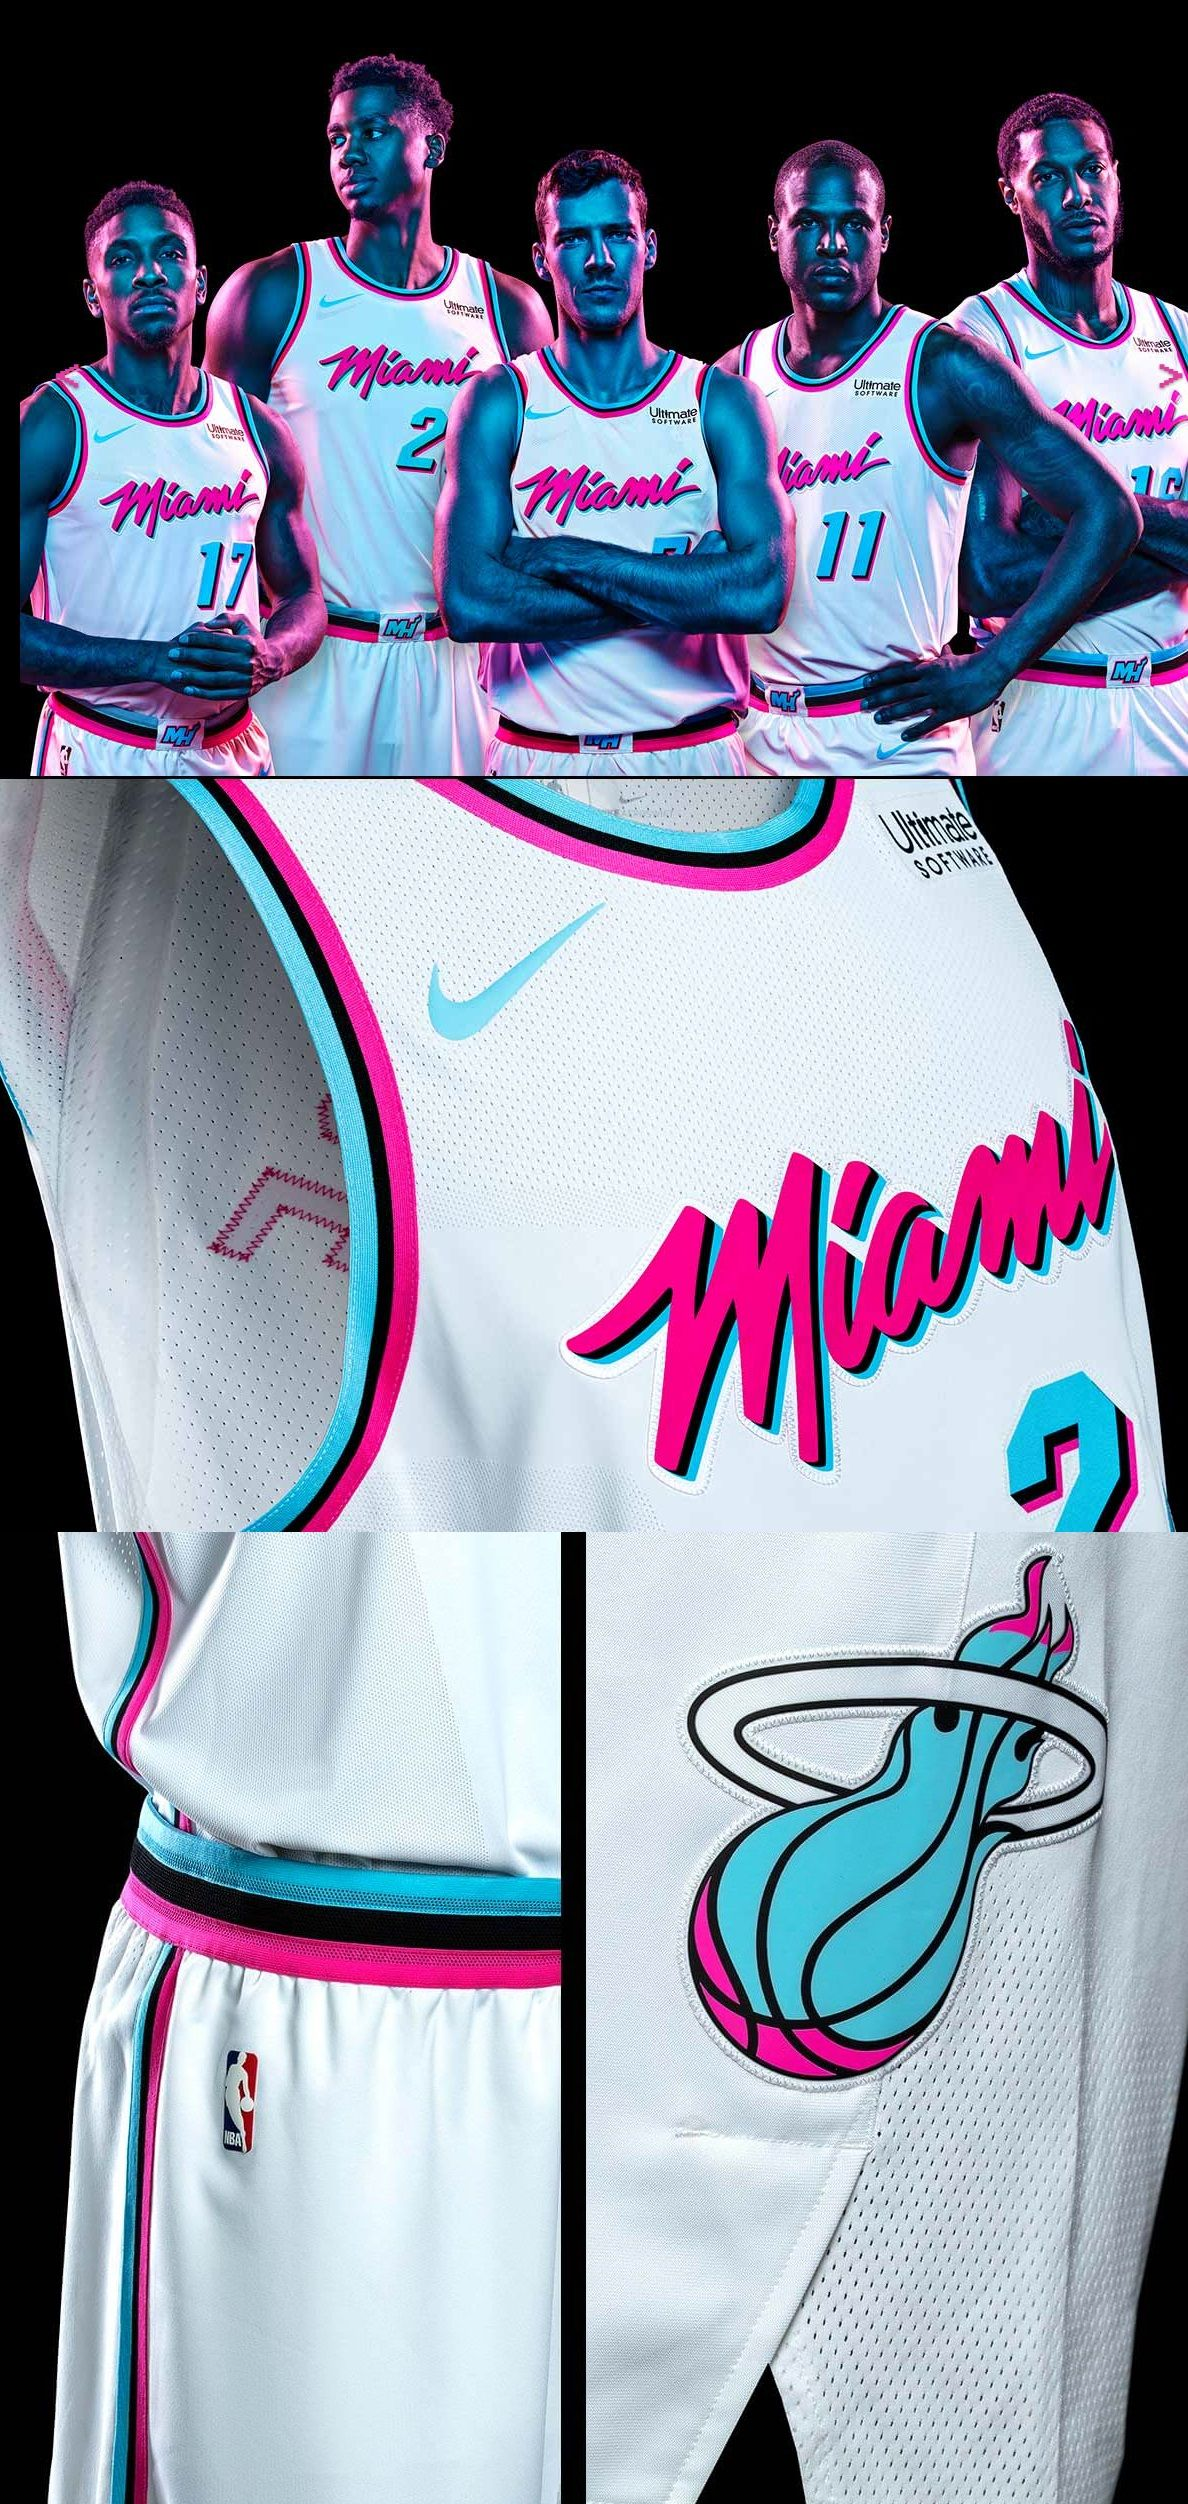 on sale f5508 34dbb Miami Heat 'Vice' City Edition Unis #MiamiHeat #MiamiCulture ...